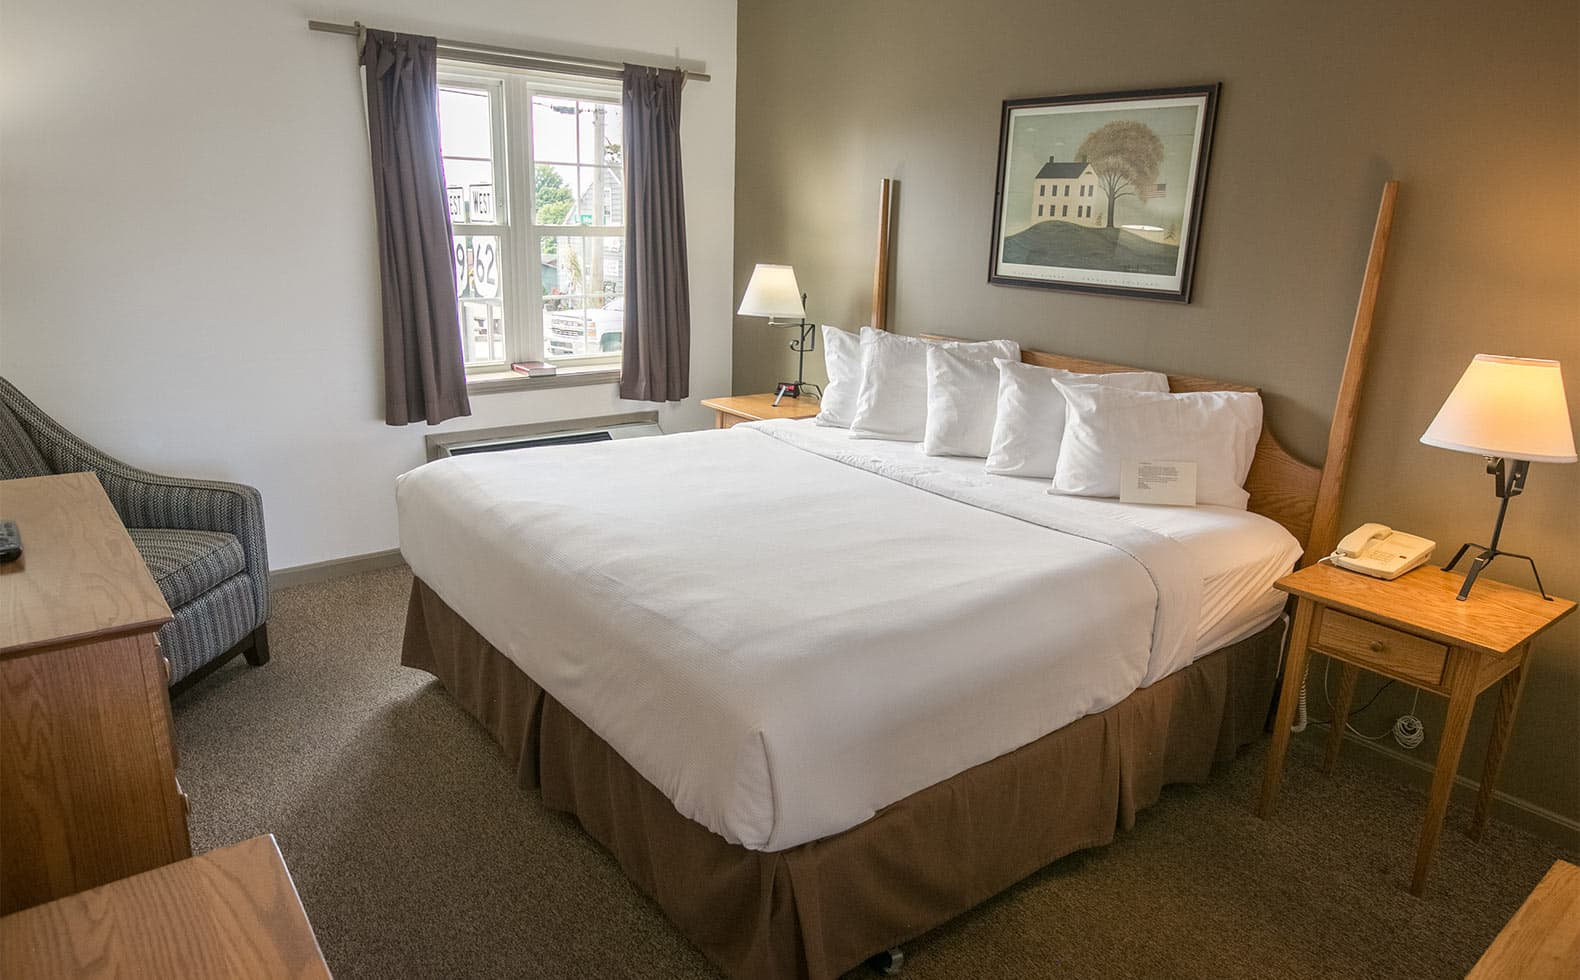 King bed with pillows in ADA Room